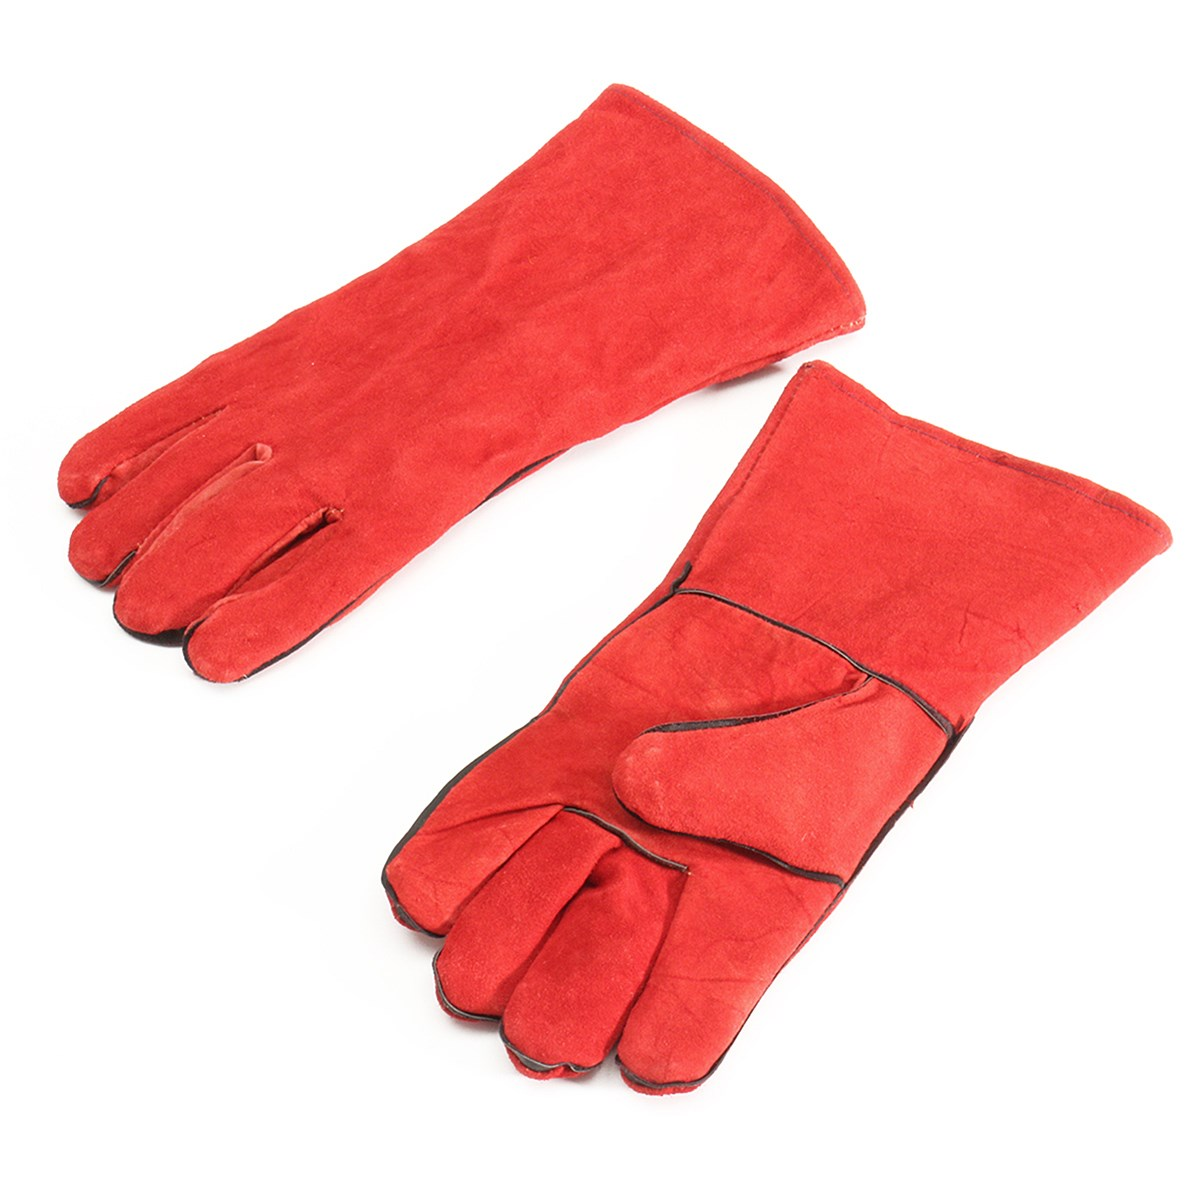 NEW XL Leather Welder Gauntlet Log Fire High Temperature Protection Long Glove Stove Safety Gloves welder machine plasma cutter welder mask for welder machine